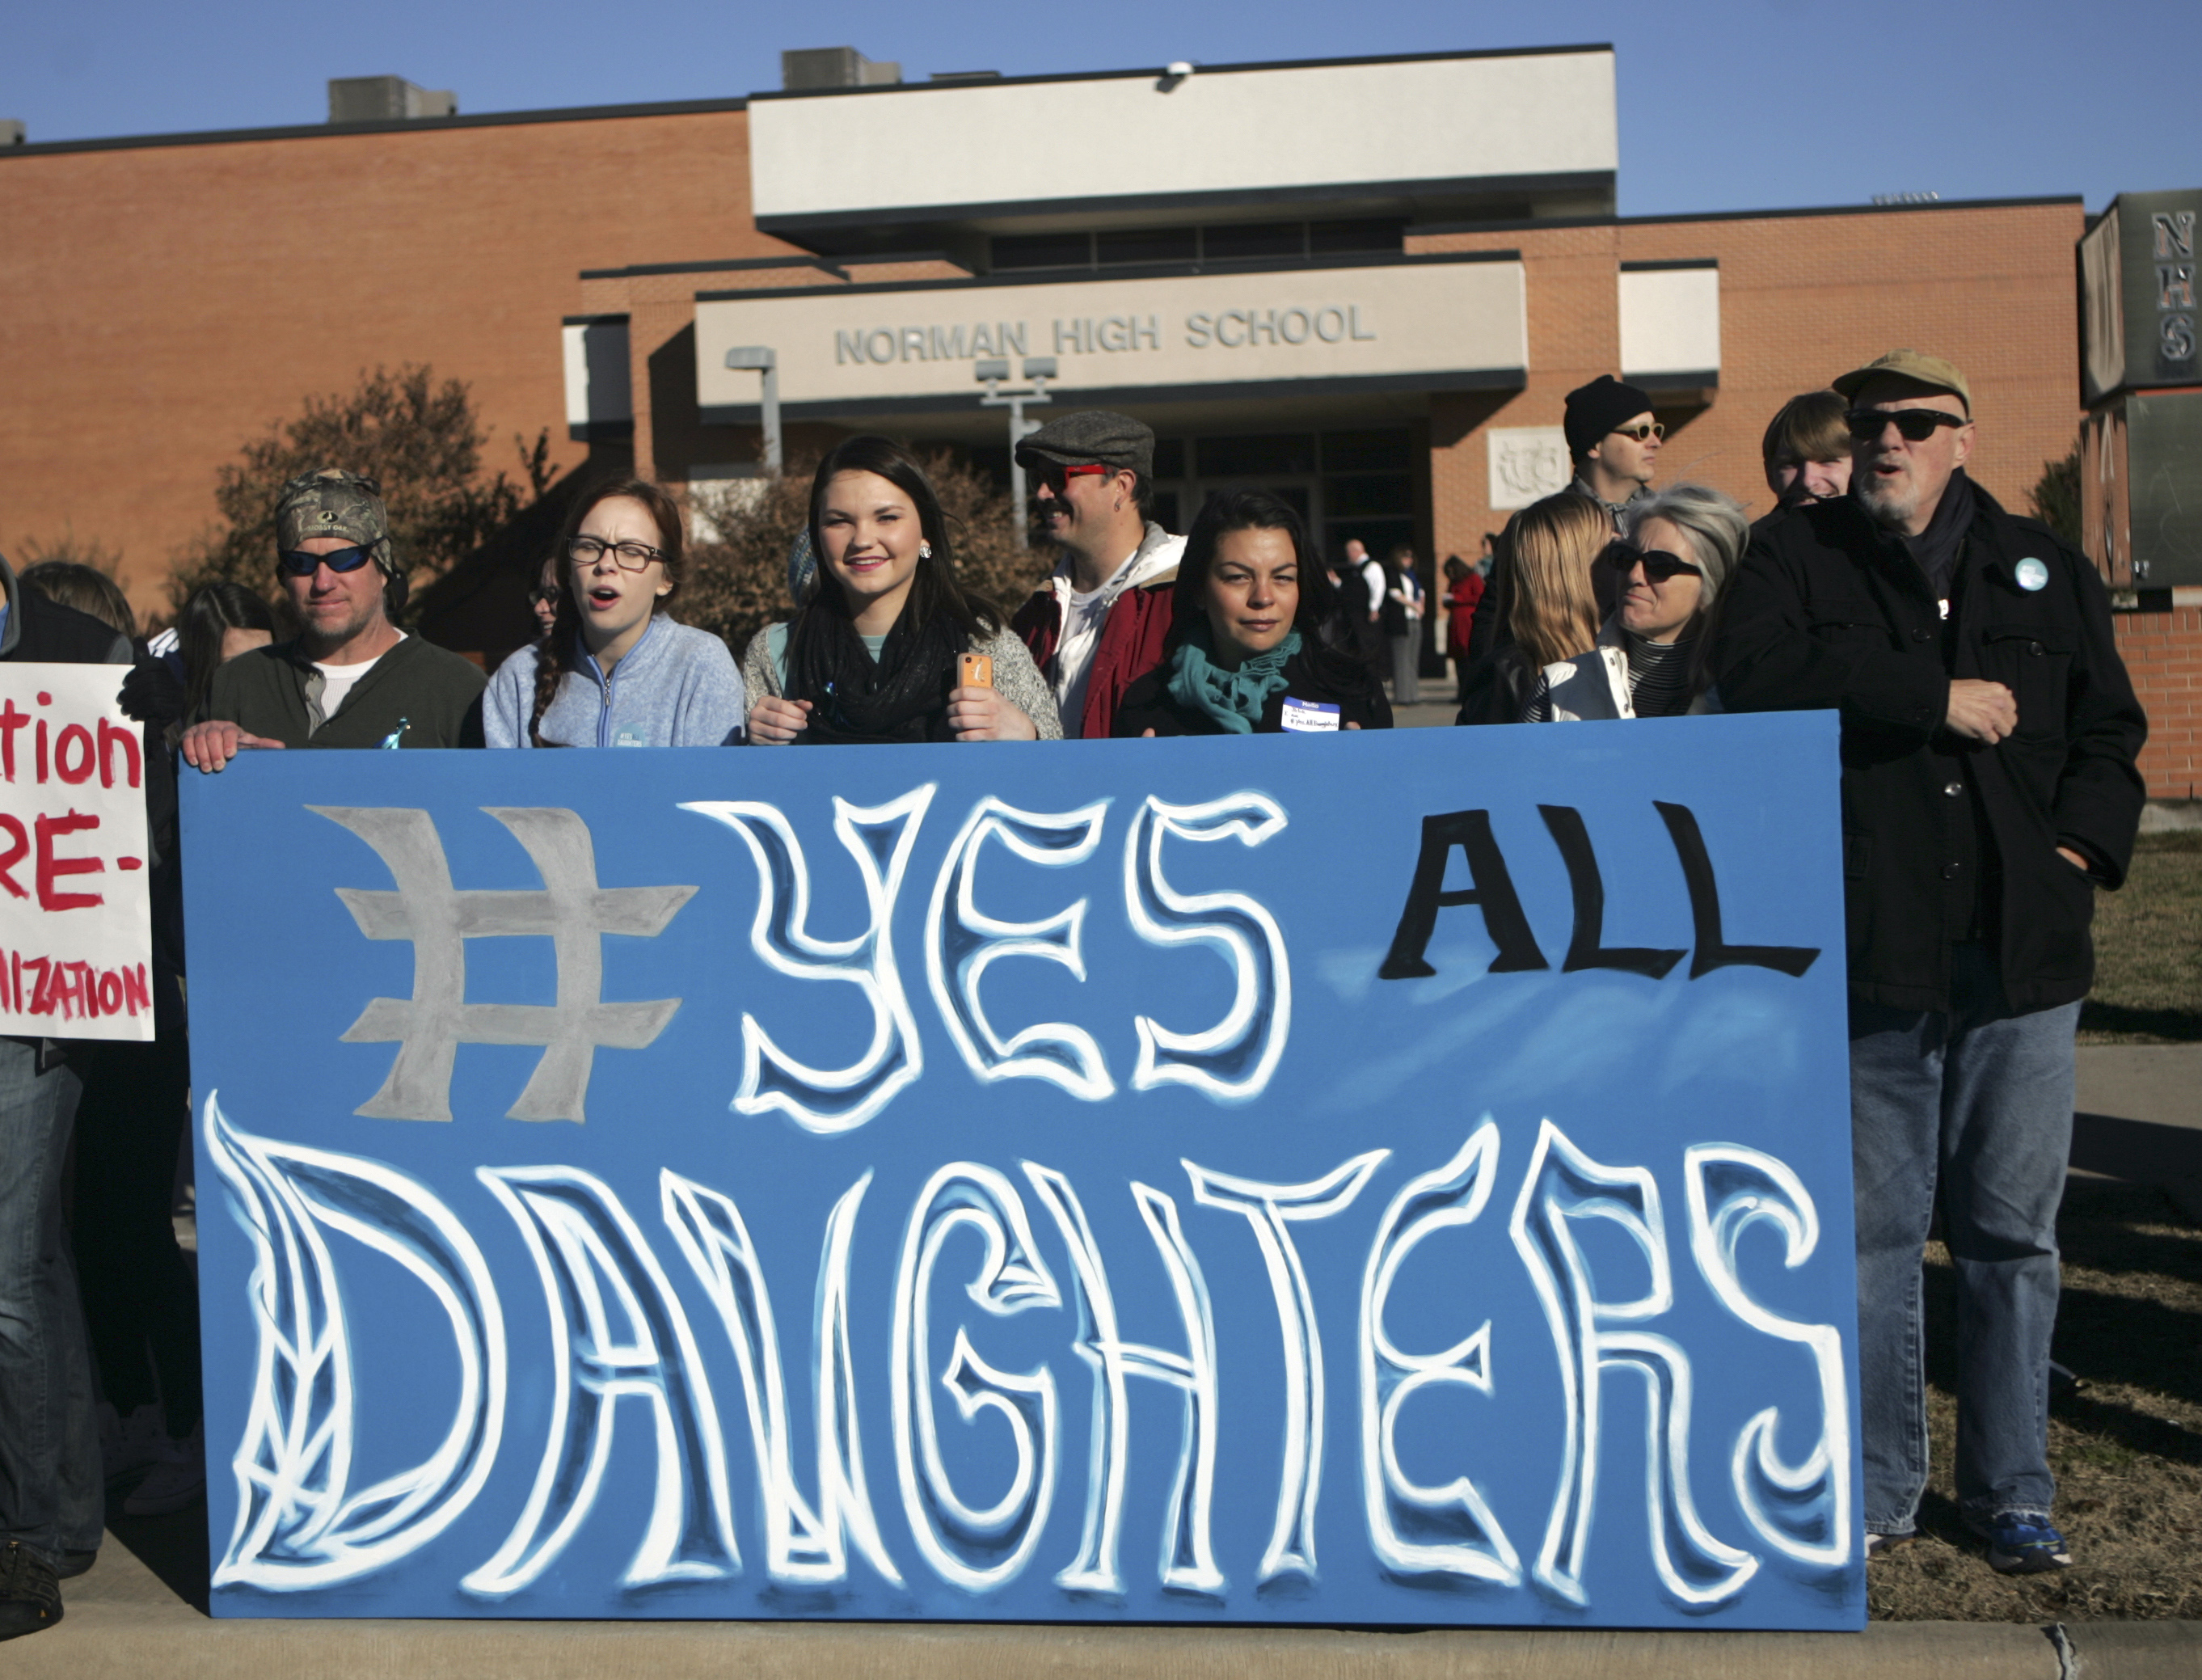 Students and parents holds up a sign during protest outside Norman High School, Monday, Nov. 24, 2014, in Norman, Okla.